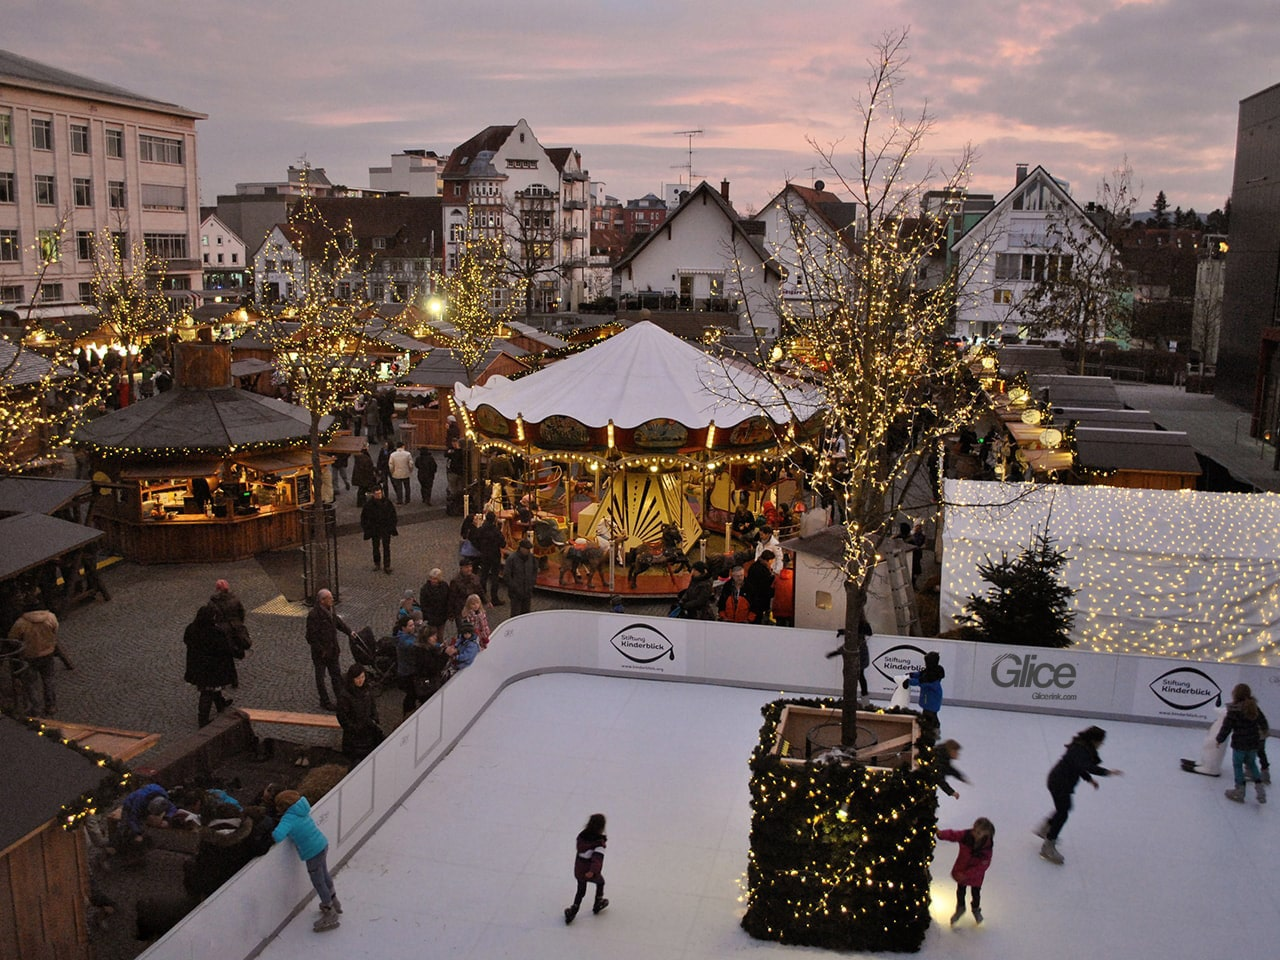 Synthetic ice rink at a German Christmas market